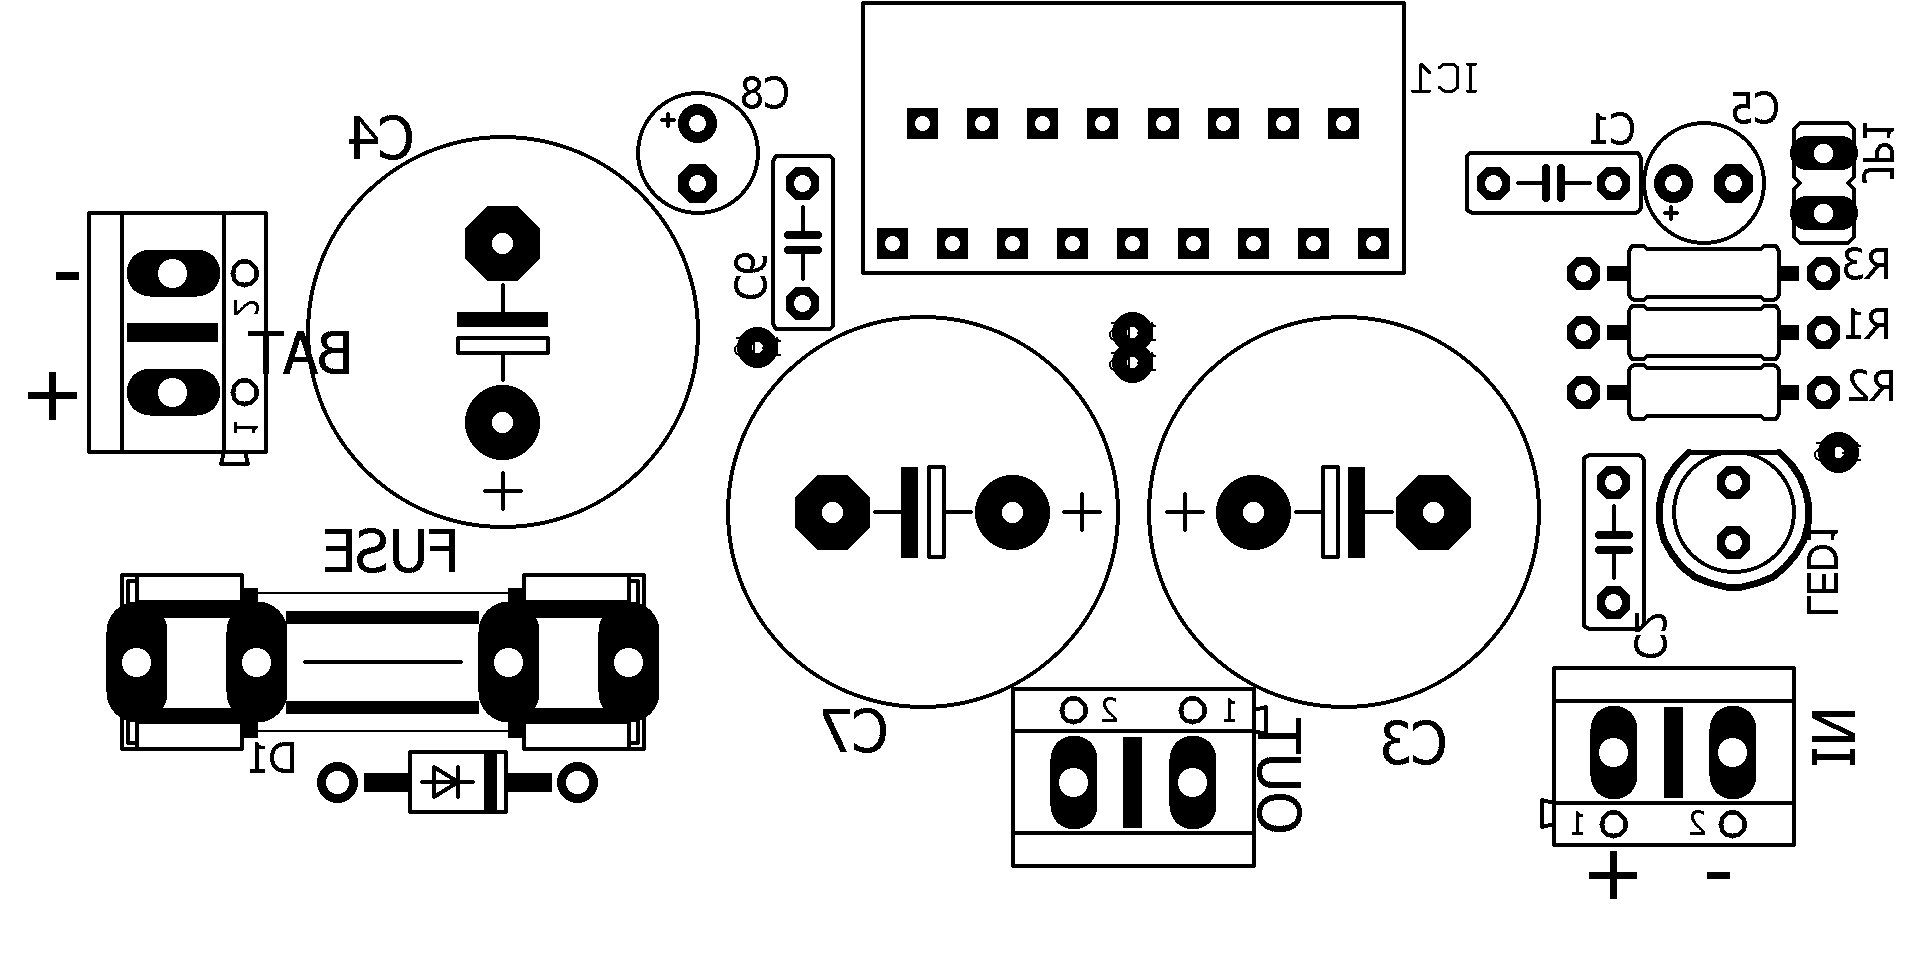 Tda Amplifier Audio Silk Suggested Printed Circuit